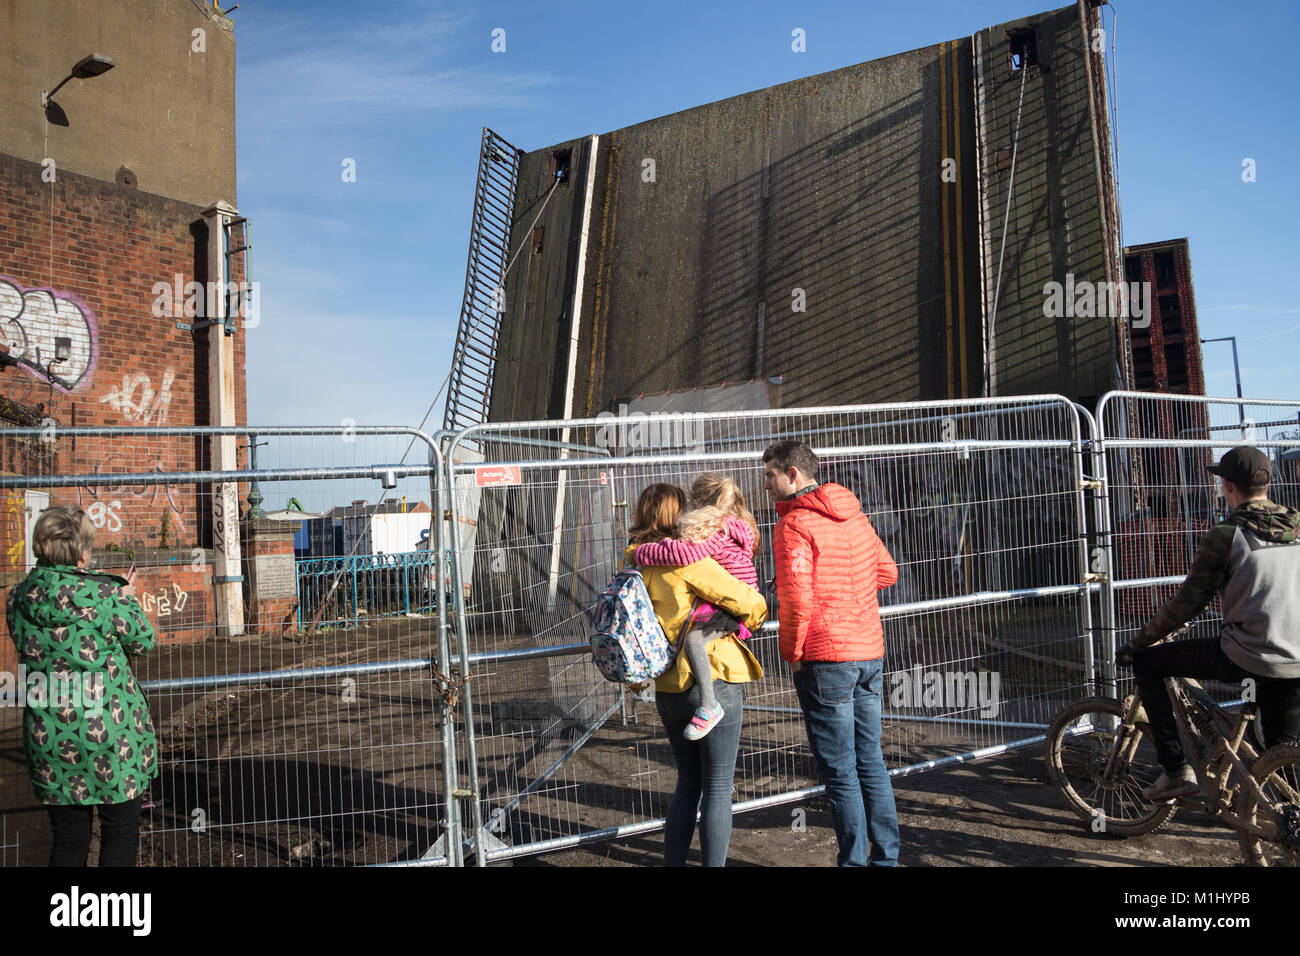 People coming to look at the Banksy art work in Hull - Stock Image